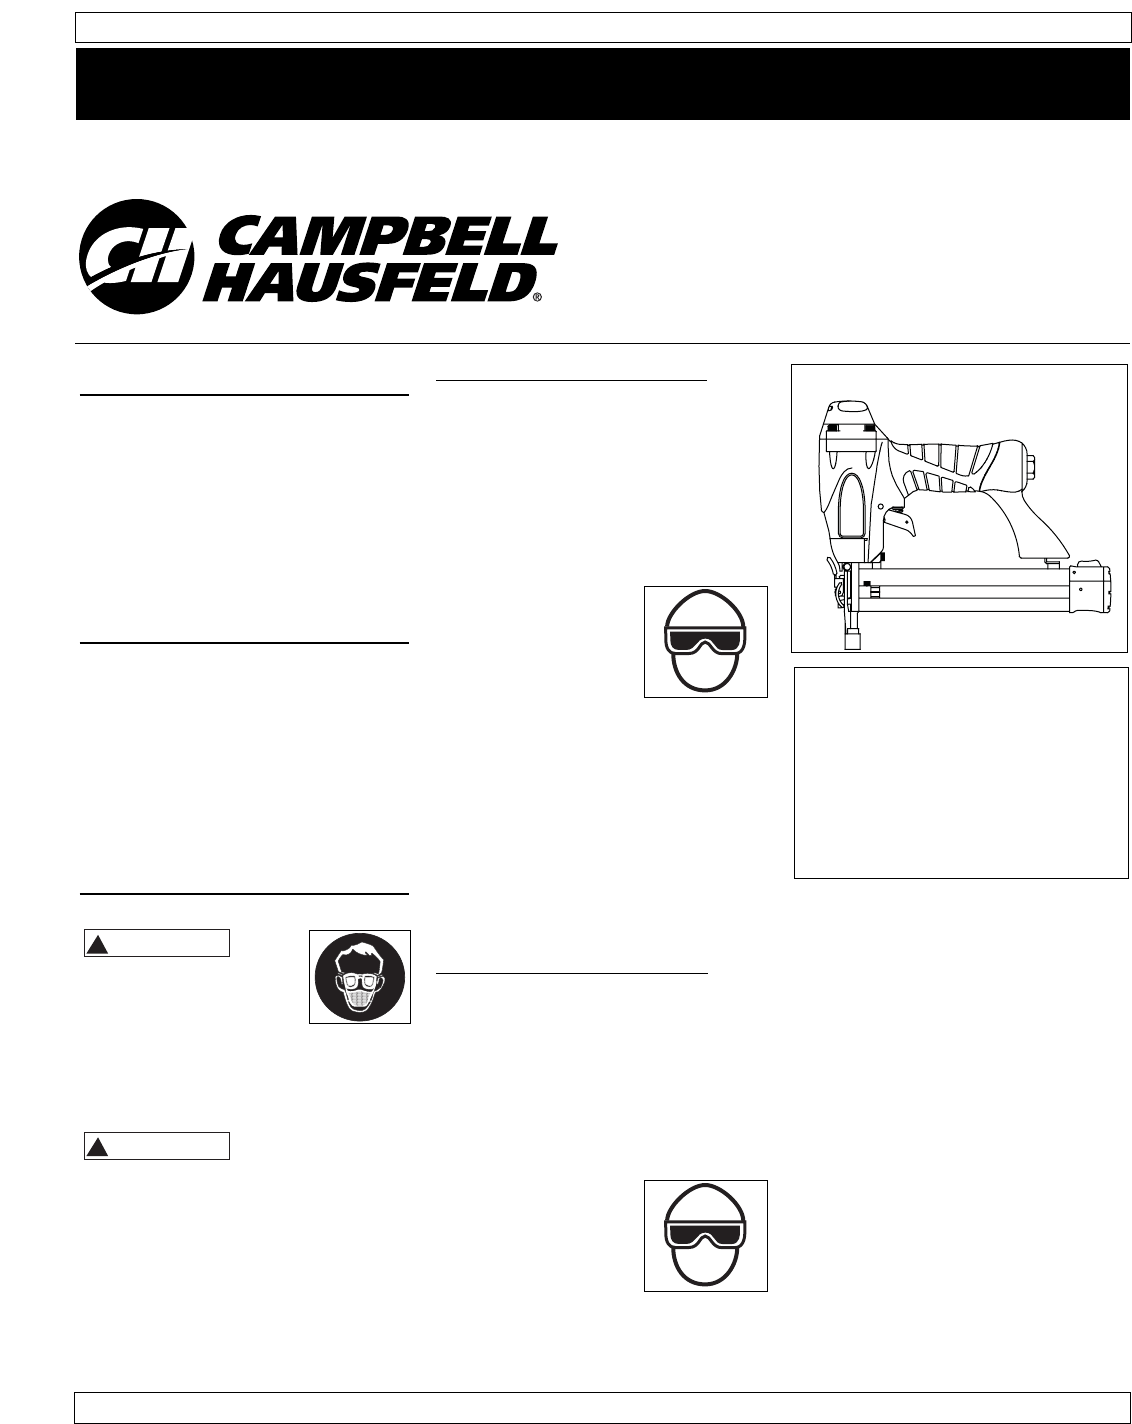 Campbell Hausfeld Staple Gun CHN10302 User Guide